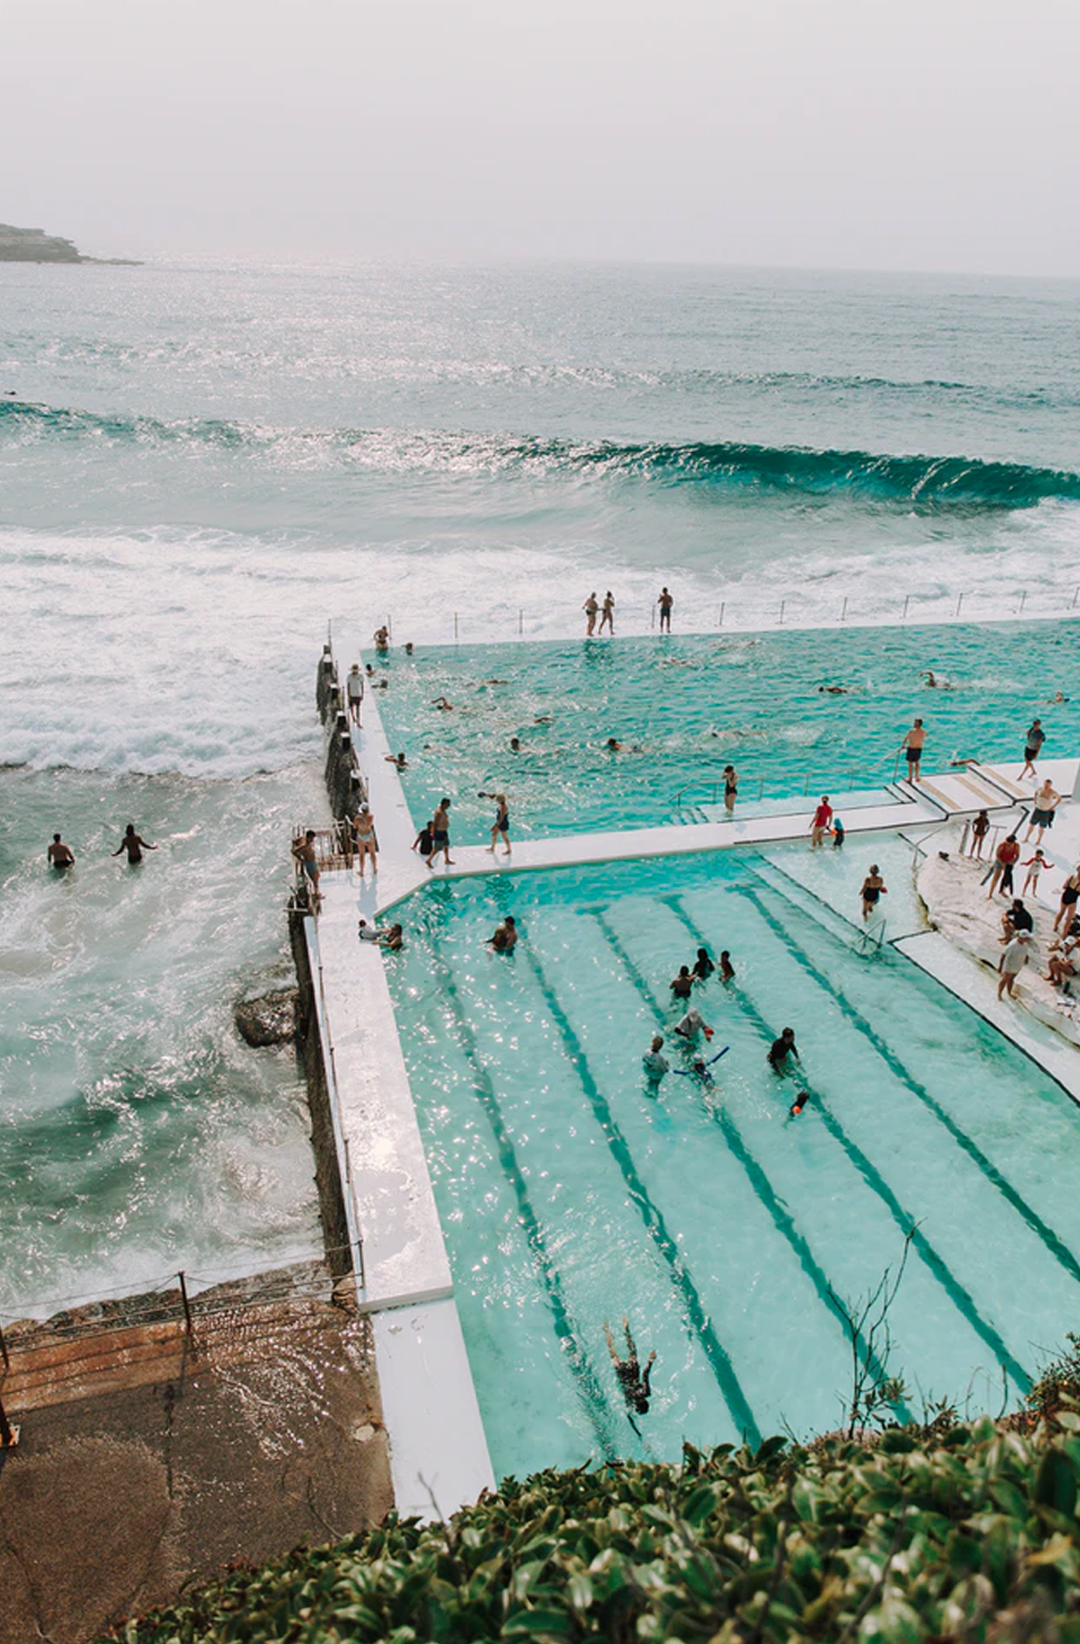 coastal view of bondi icerbergs- one of sydney's most famous ocean pools